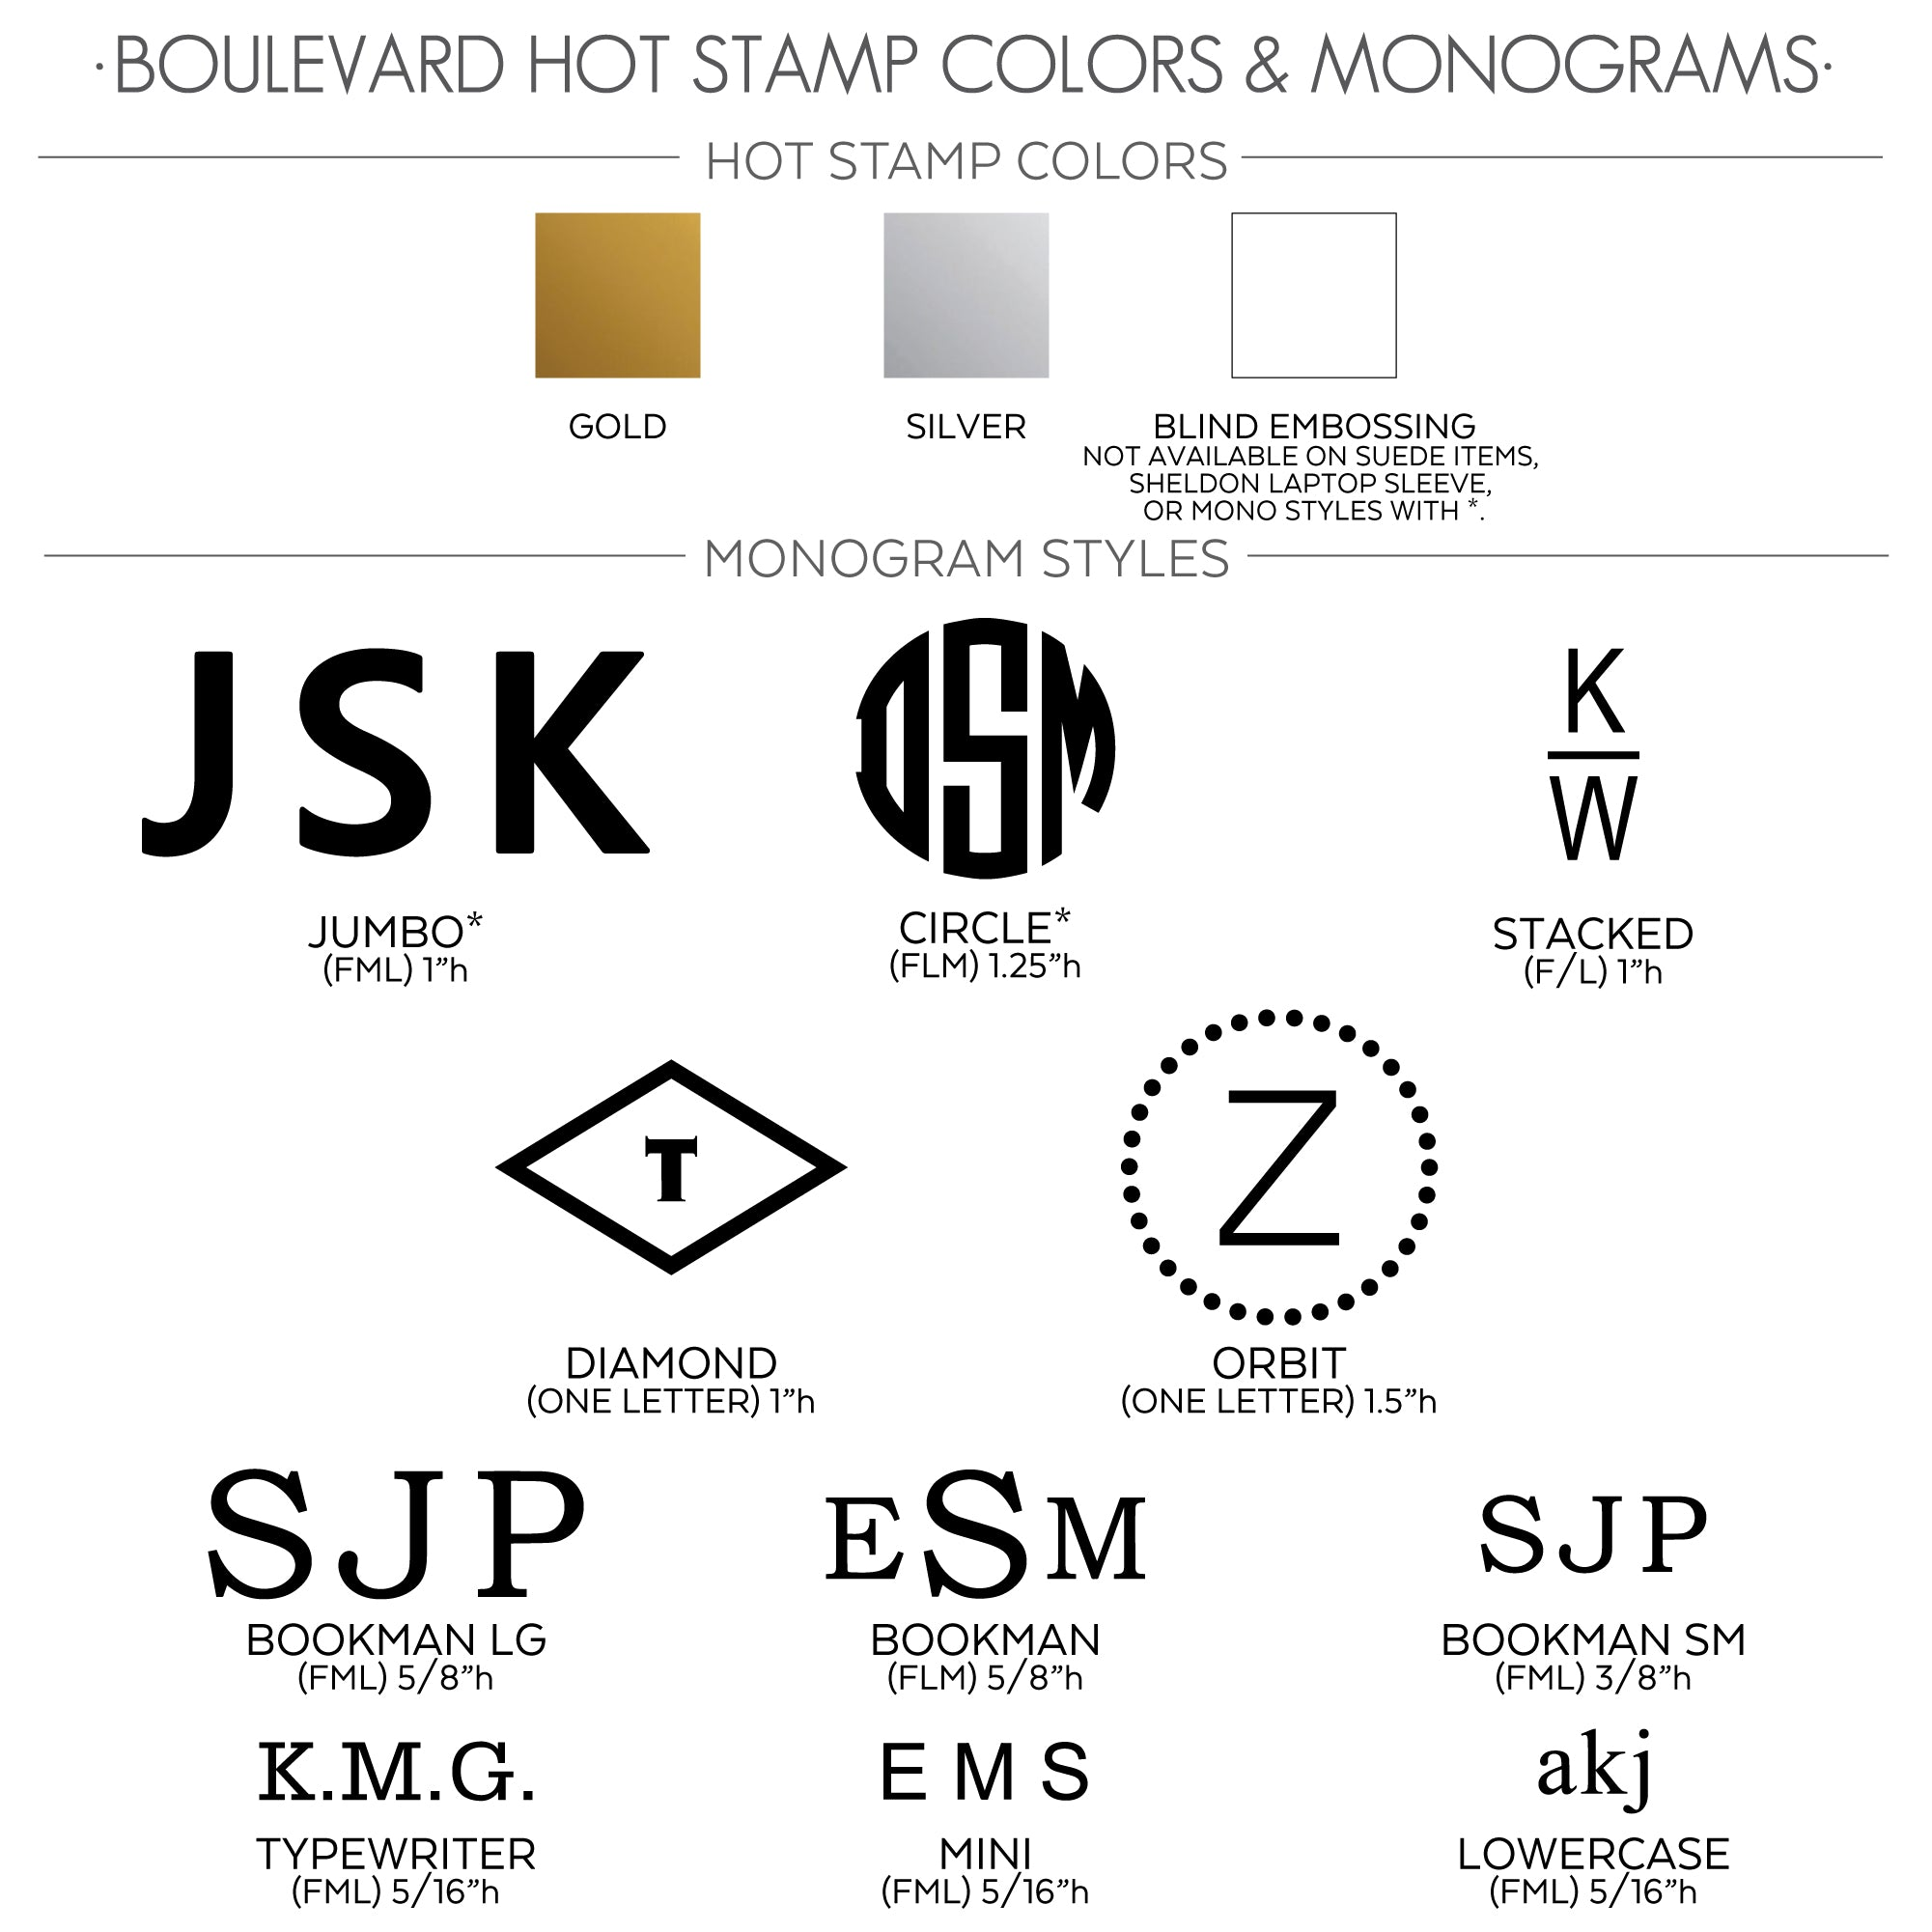 BLVD HOT STAMP OPTIONS